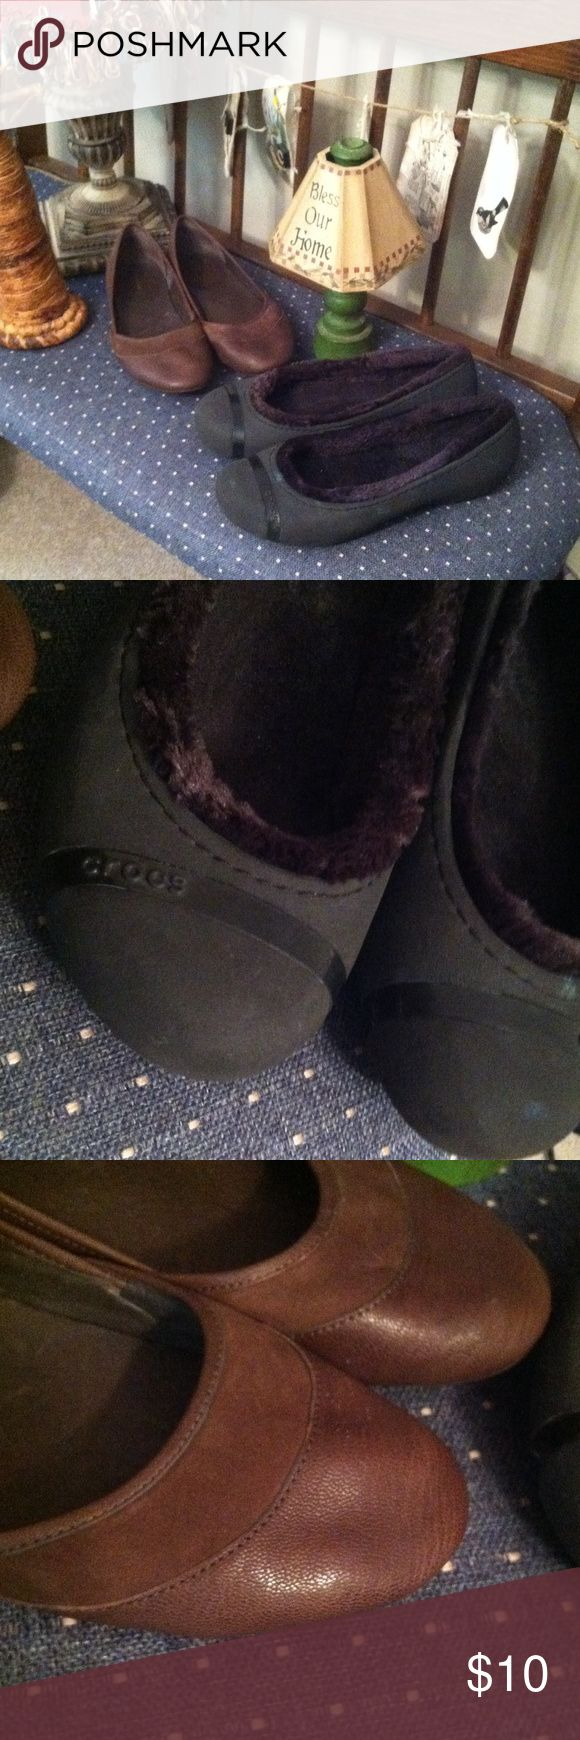 Clearance!! Sz 10 crocs patagonia Going on a mission trip. Clearance sale!!  2 pair sz 10 winter crocs and patagonia brown leather flats Patagonia Shoes Flats & Loafers